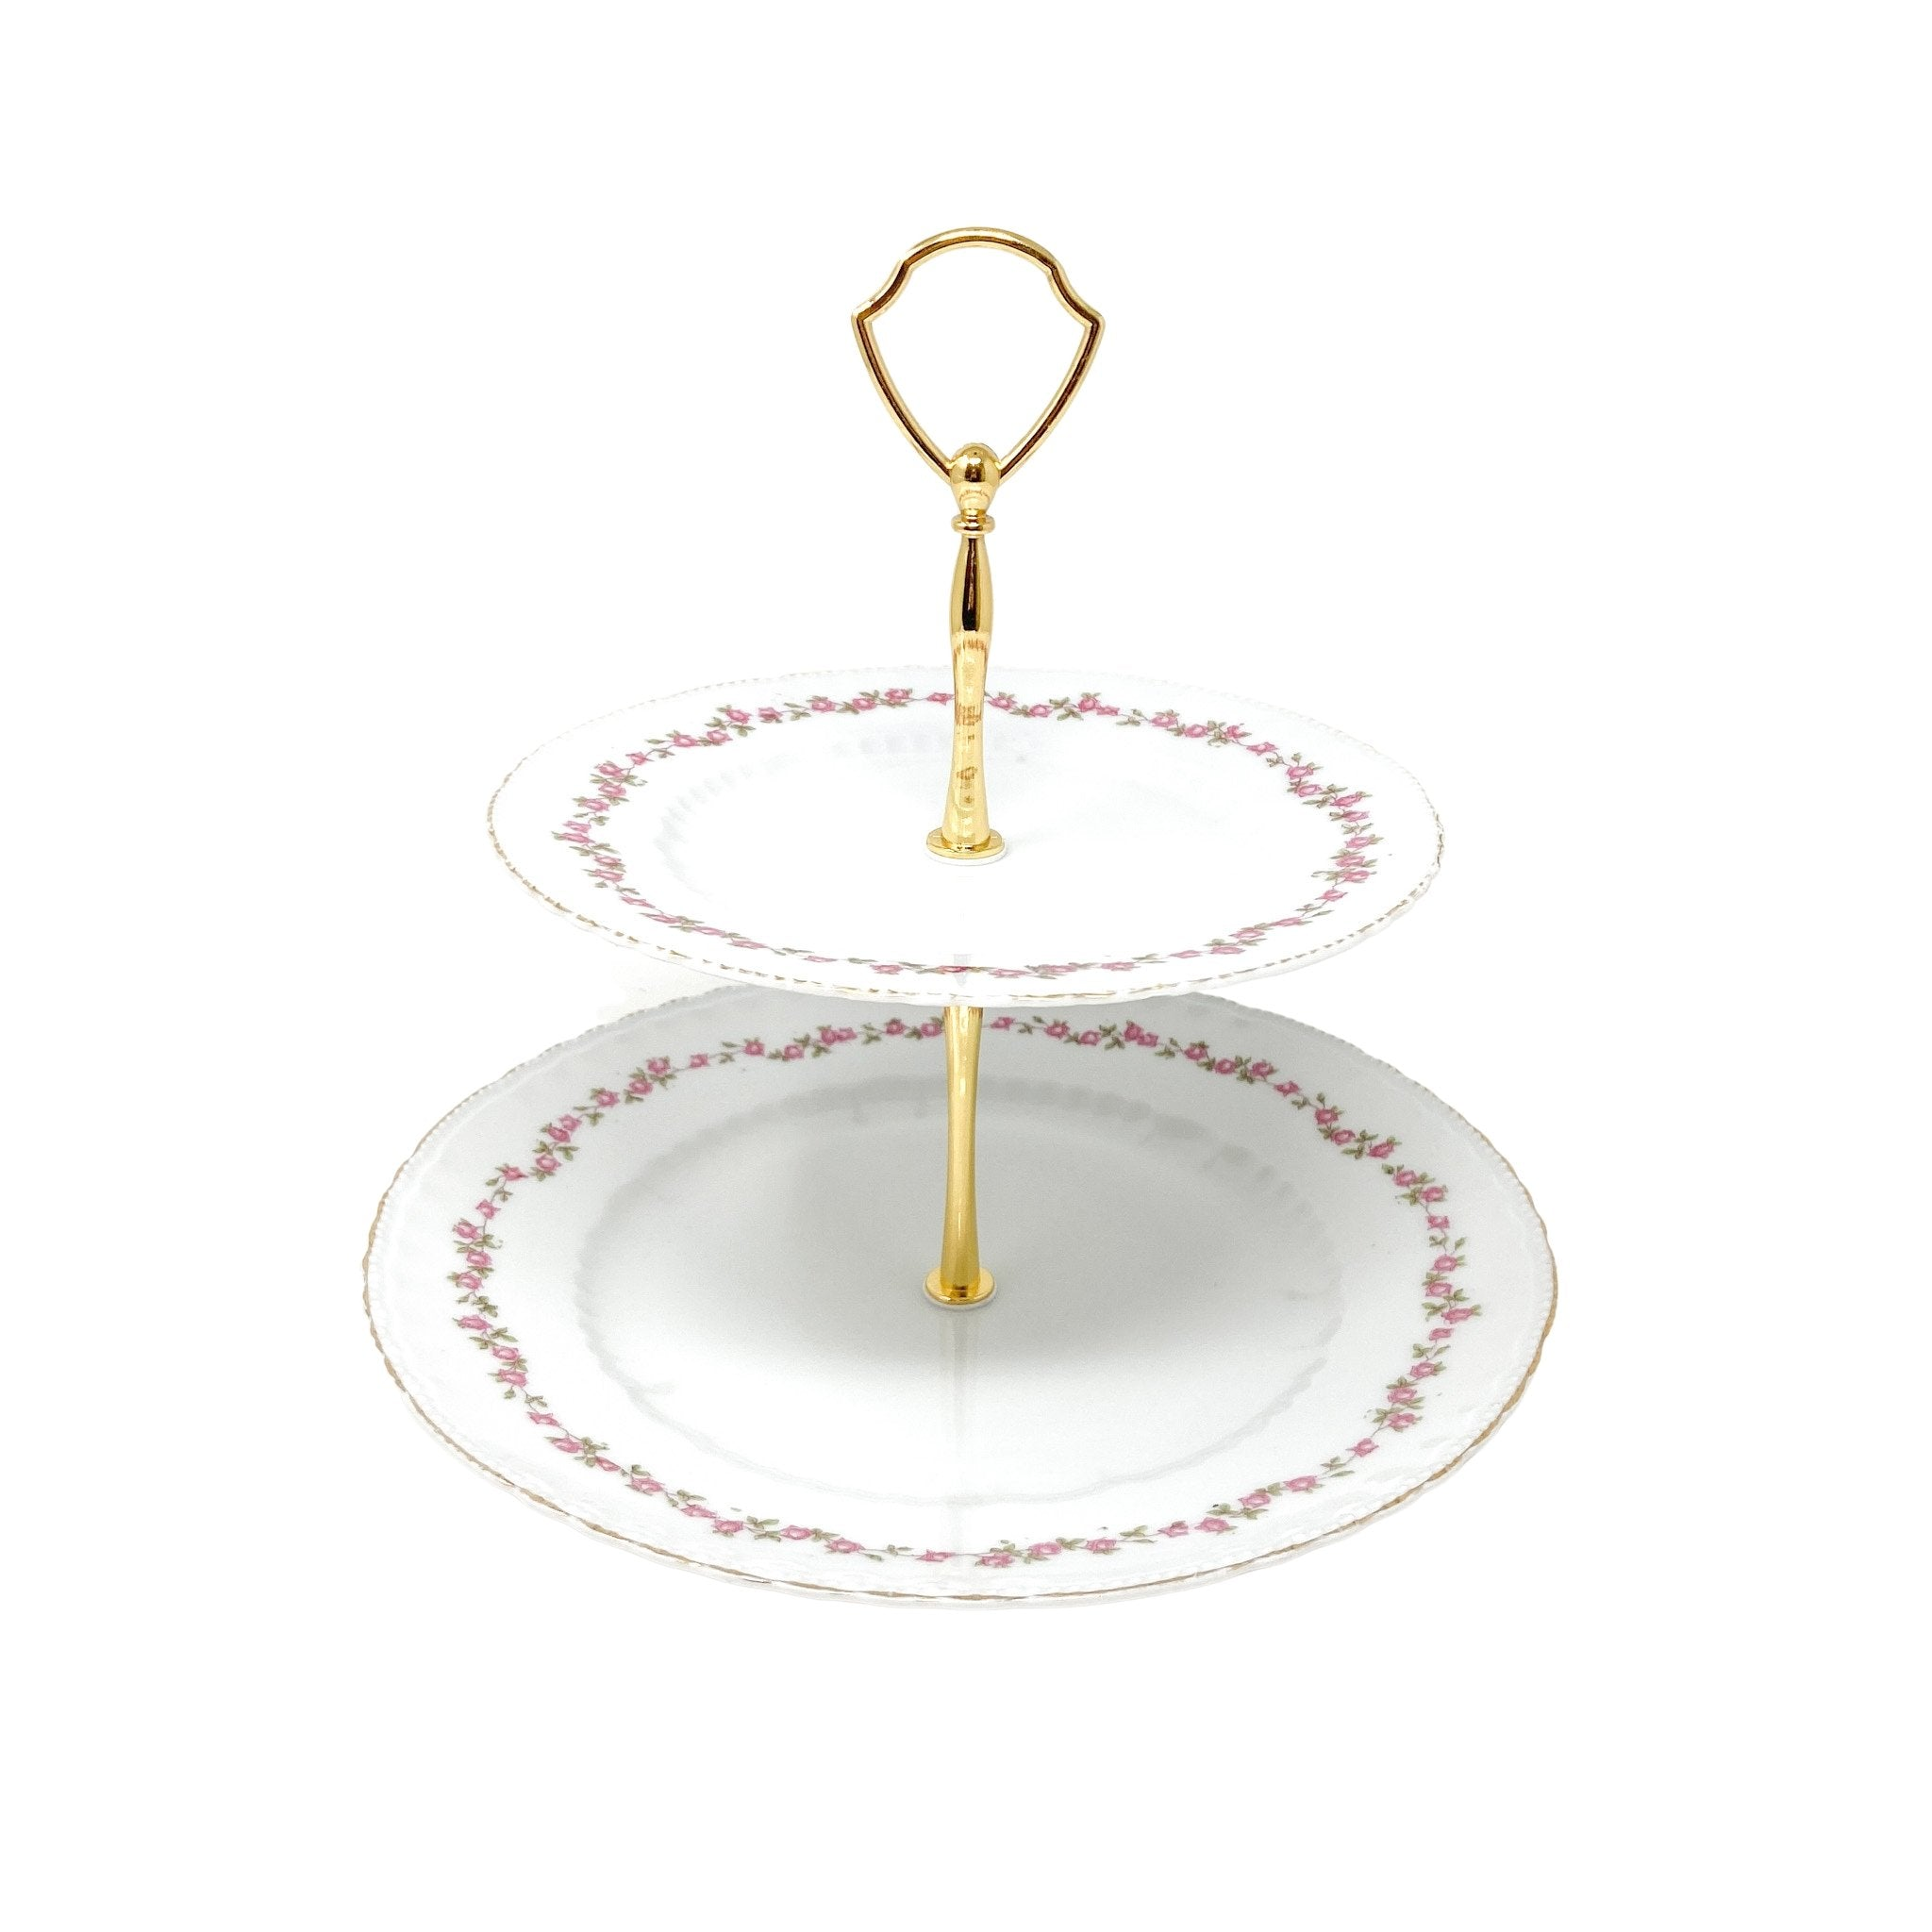 2-Tiered Victoria Austria Delicate Rose Stand - perfect for Mother's Day, Valentine's Day, Birthday or housewarming gift